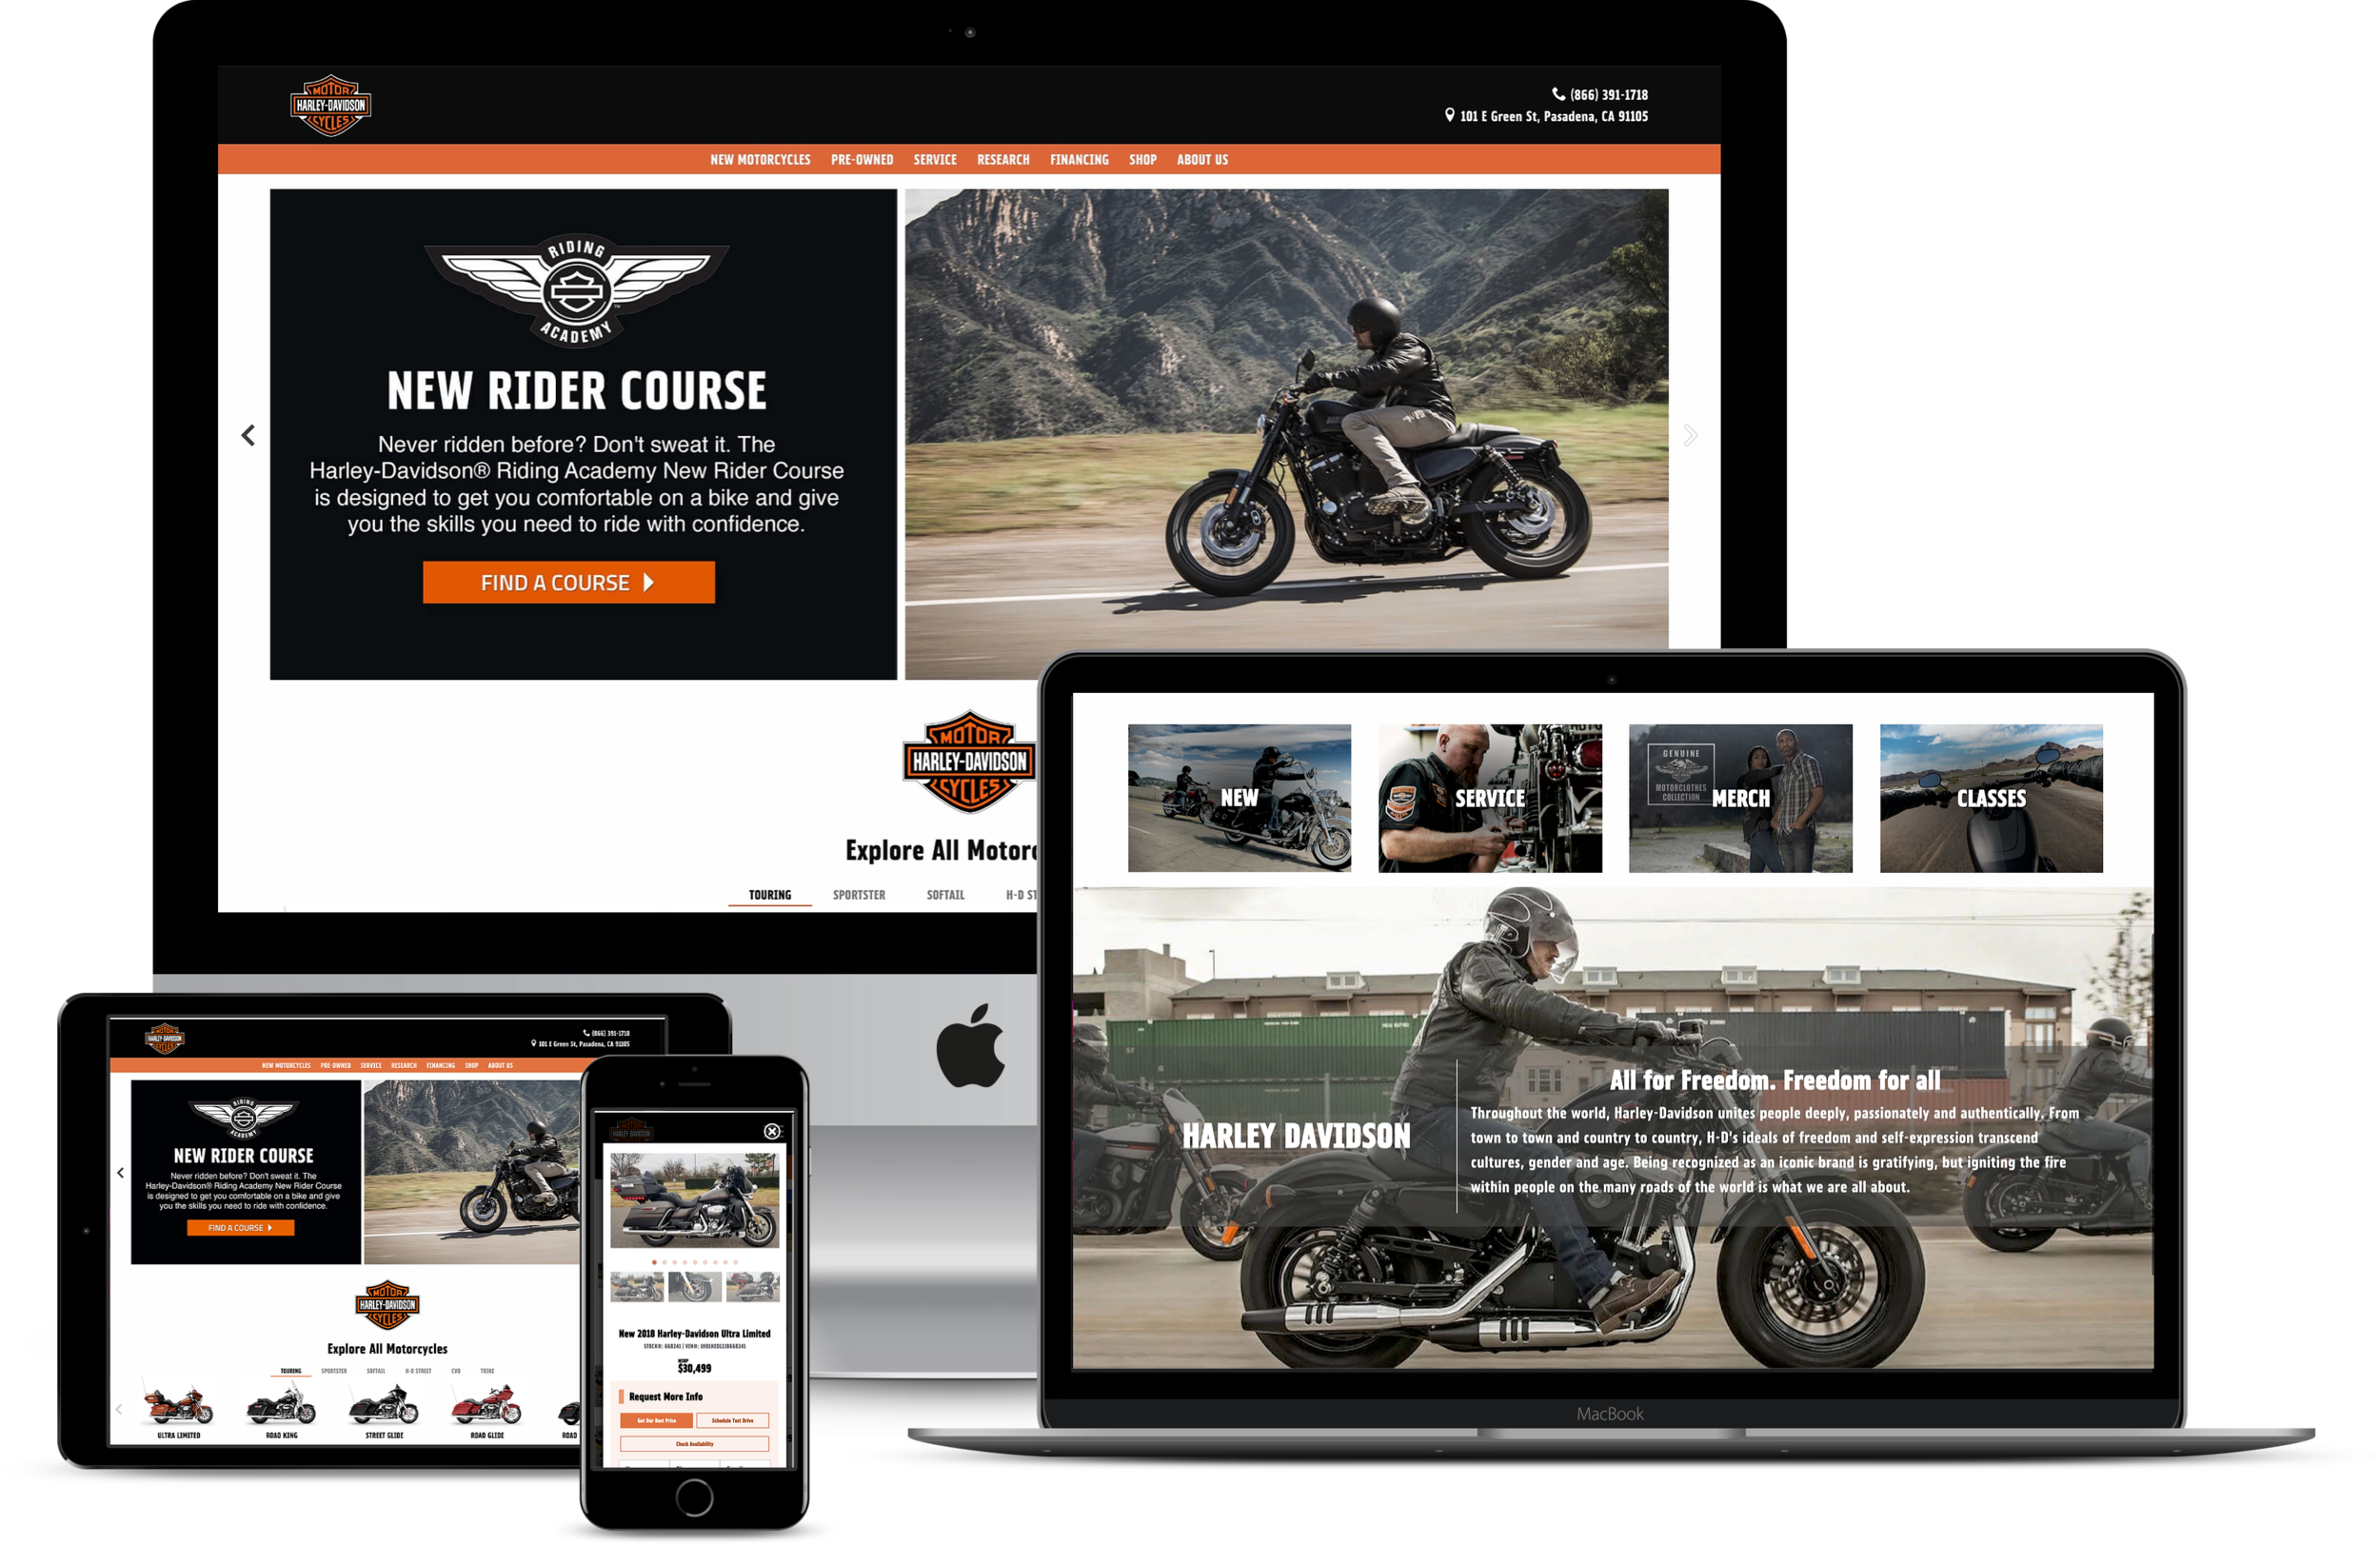 About Fox - Fox Dealer is a personalized digital company where powerful digital technology meets white glove customer service. Fox specializes in custom responsive websites, stunning creative design, and cutting-edge digital marketing.*Some products and services are only available in specific packages. Schedule a demo today to learn more about Fox Dealer's Harley-Davidson packages.